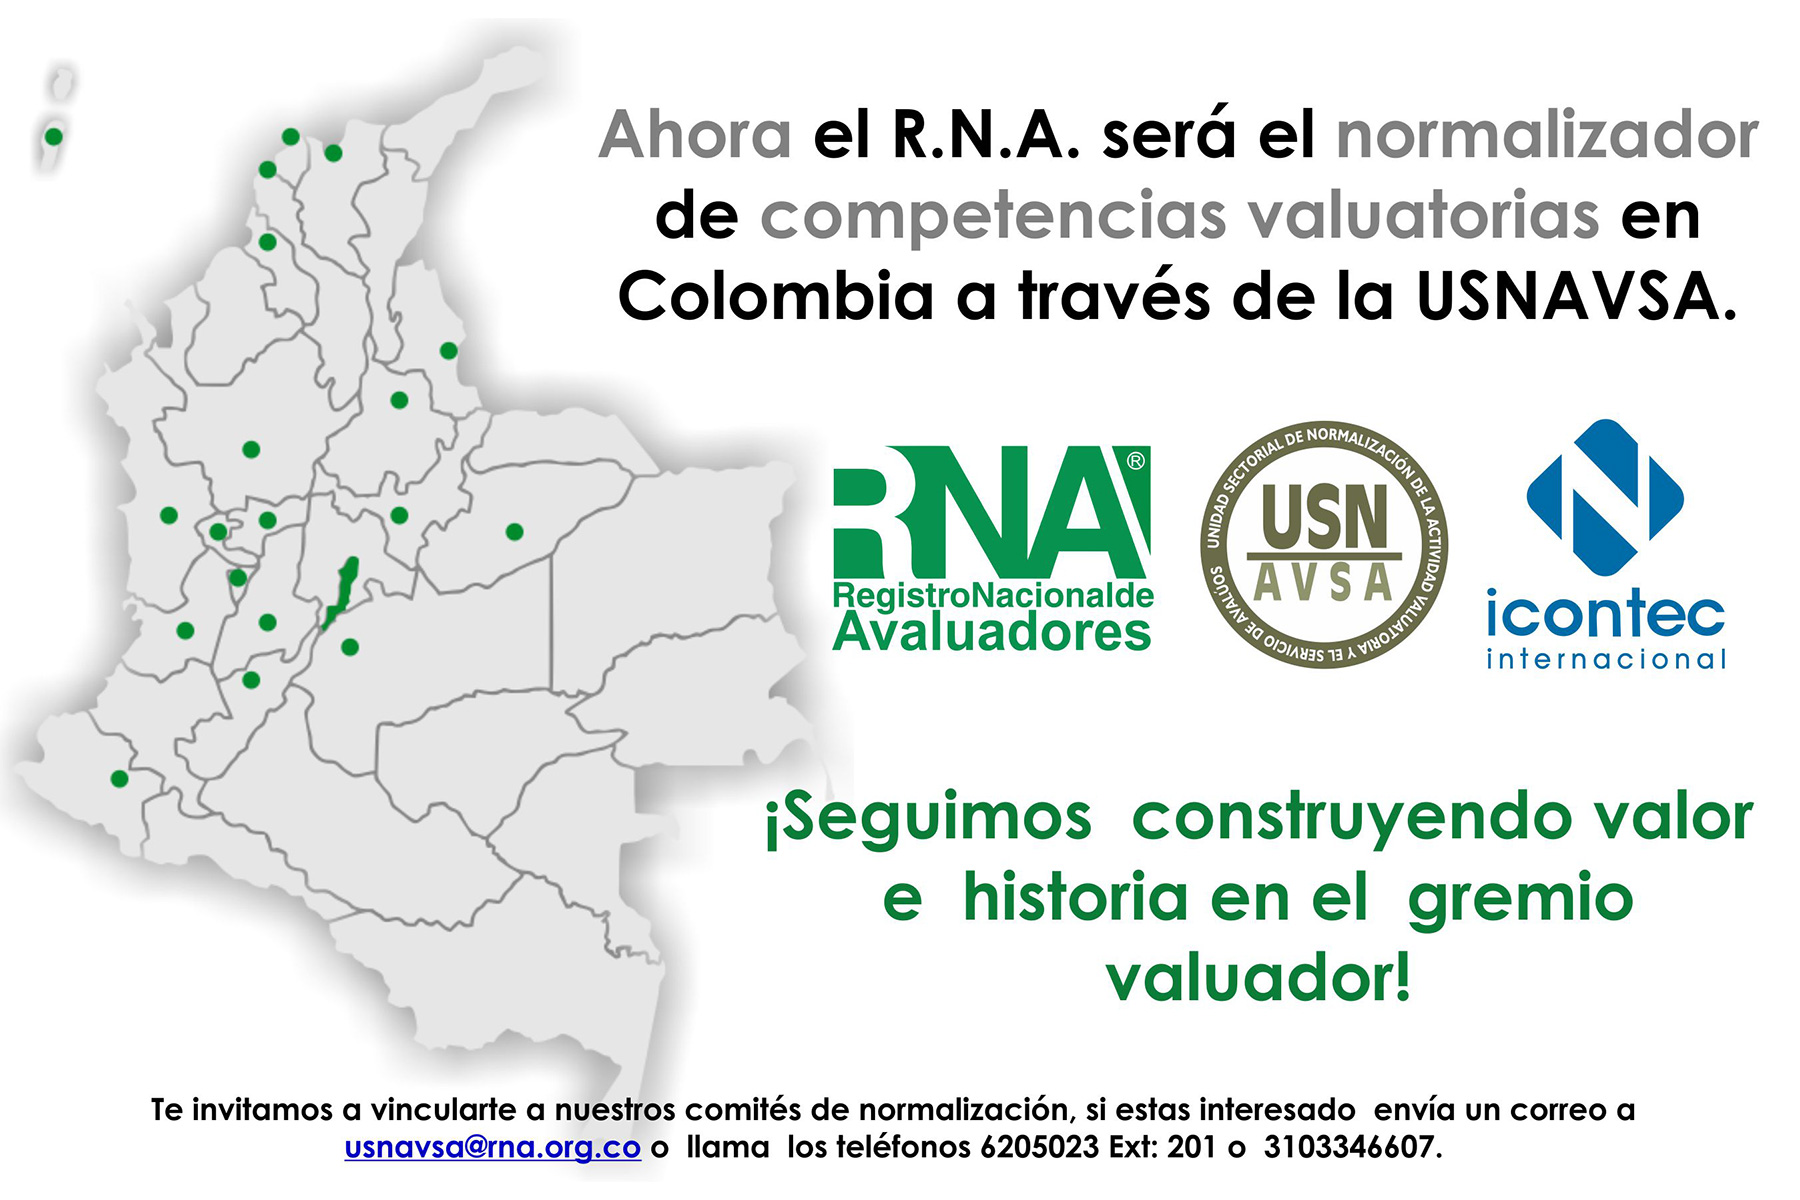 rna-normalizador-de-competencias-valuatorias-en-colombia